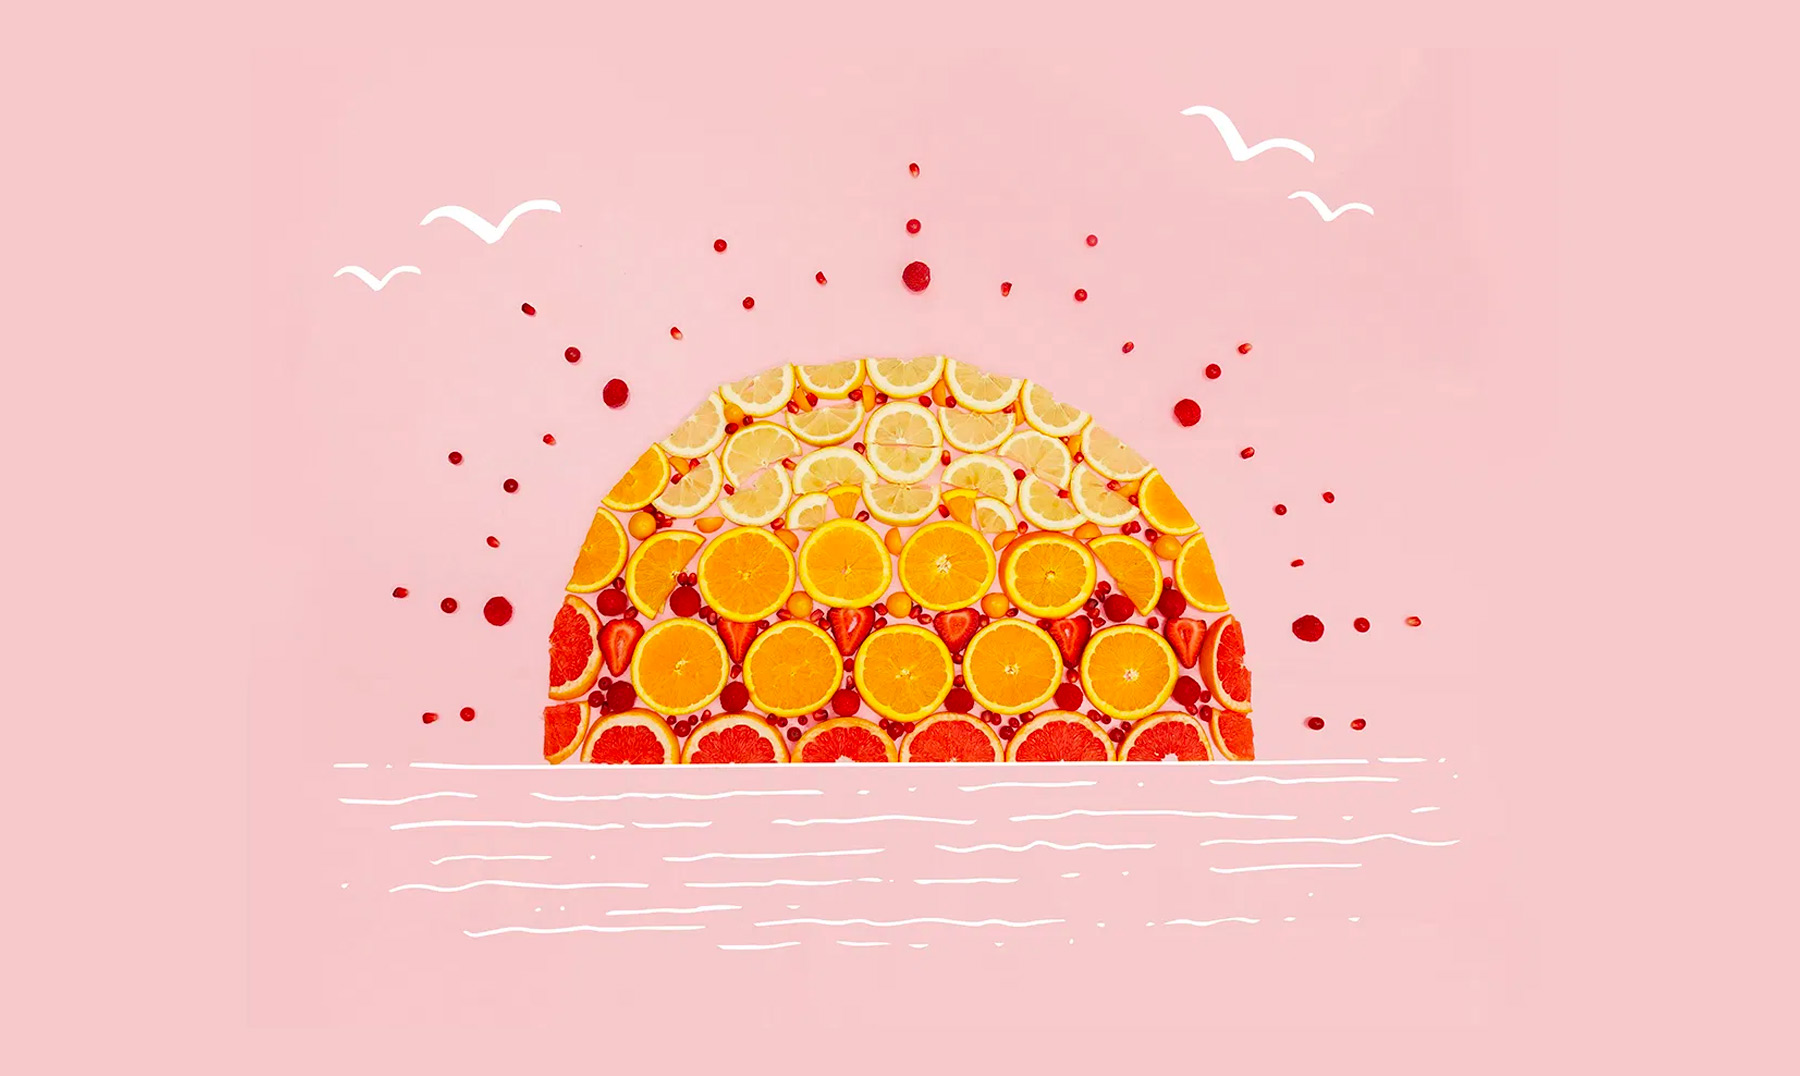 Sunset made of fruit